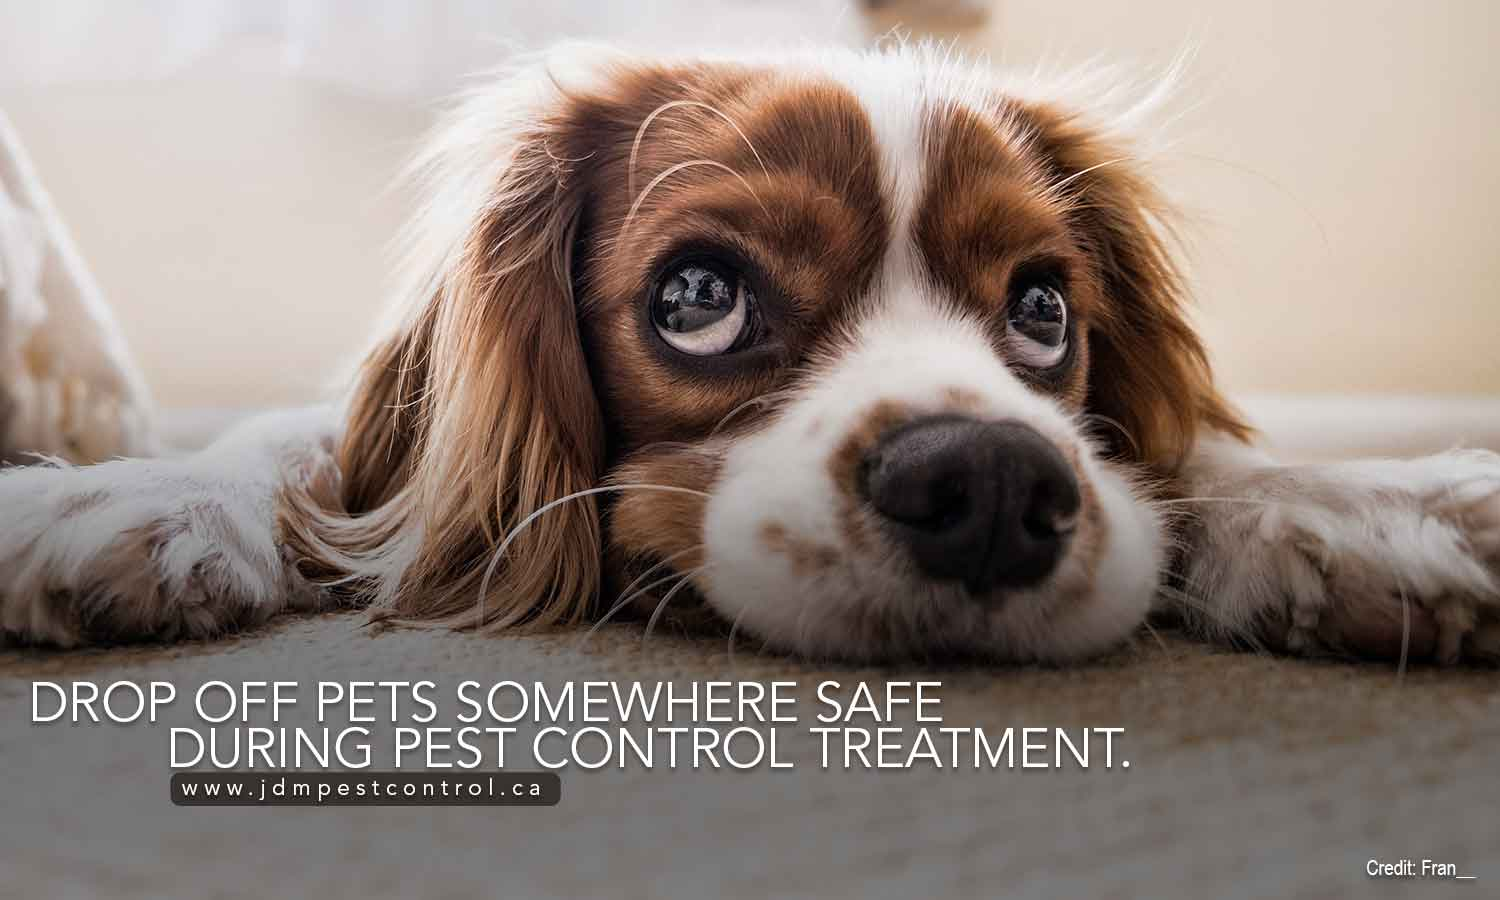 Drop off pets somewhere safe during pest control treatment.